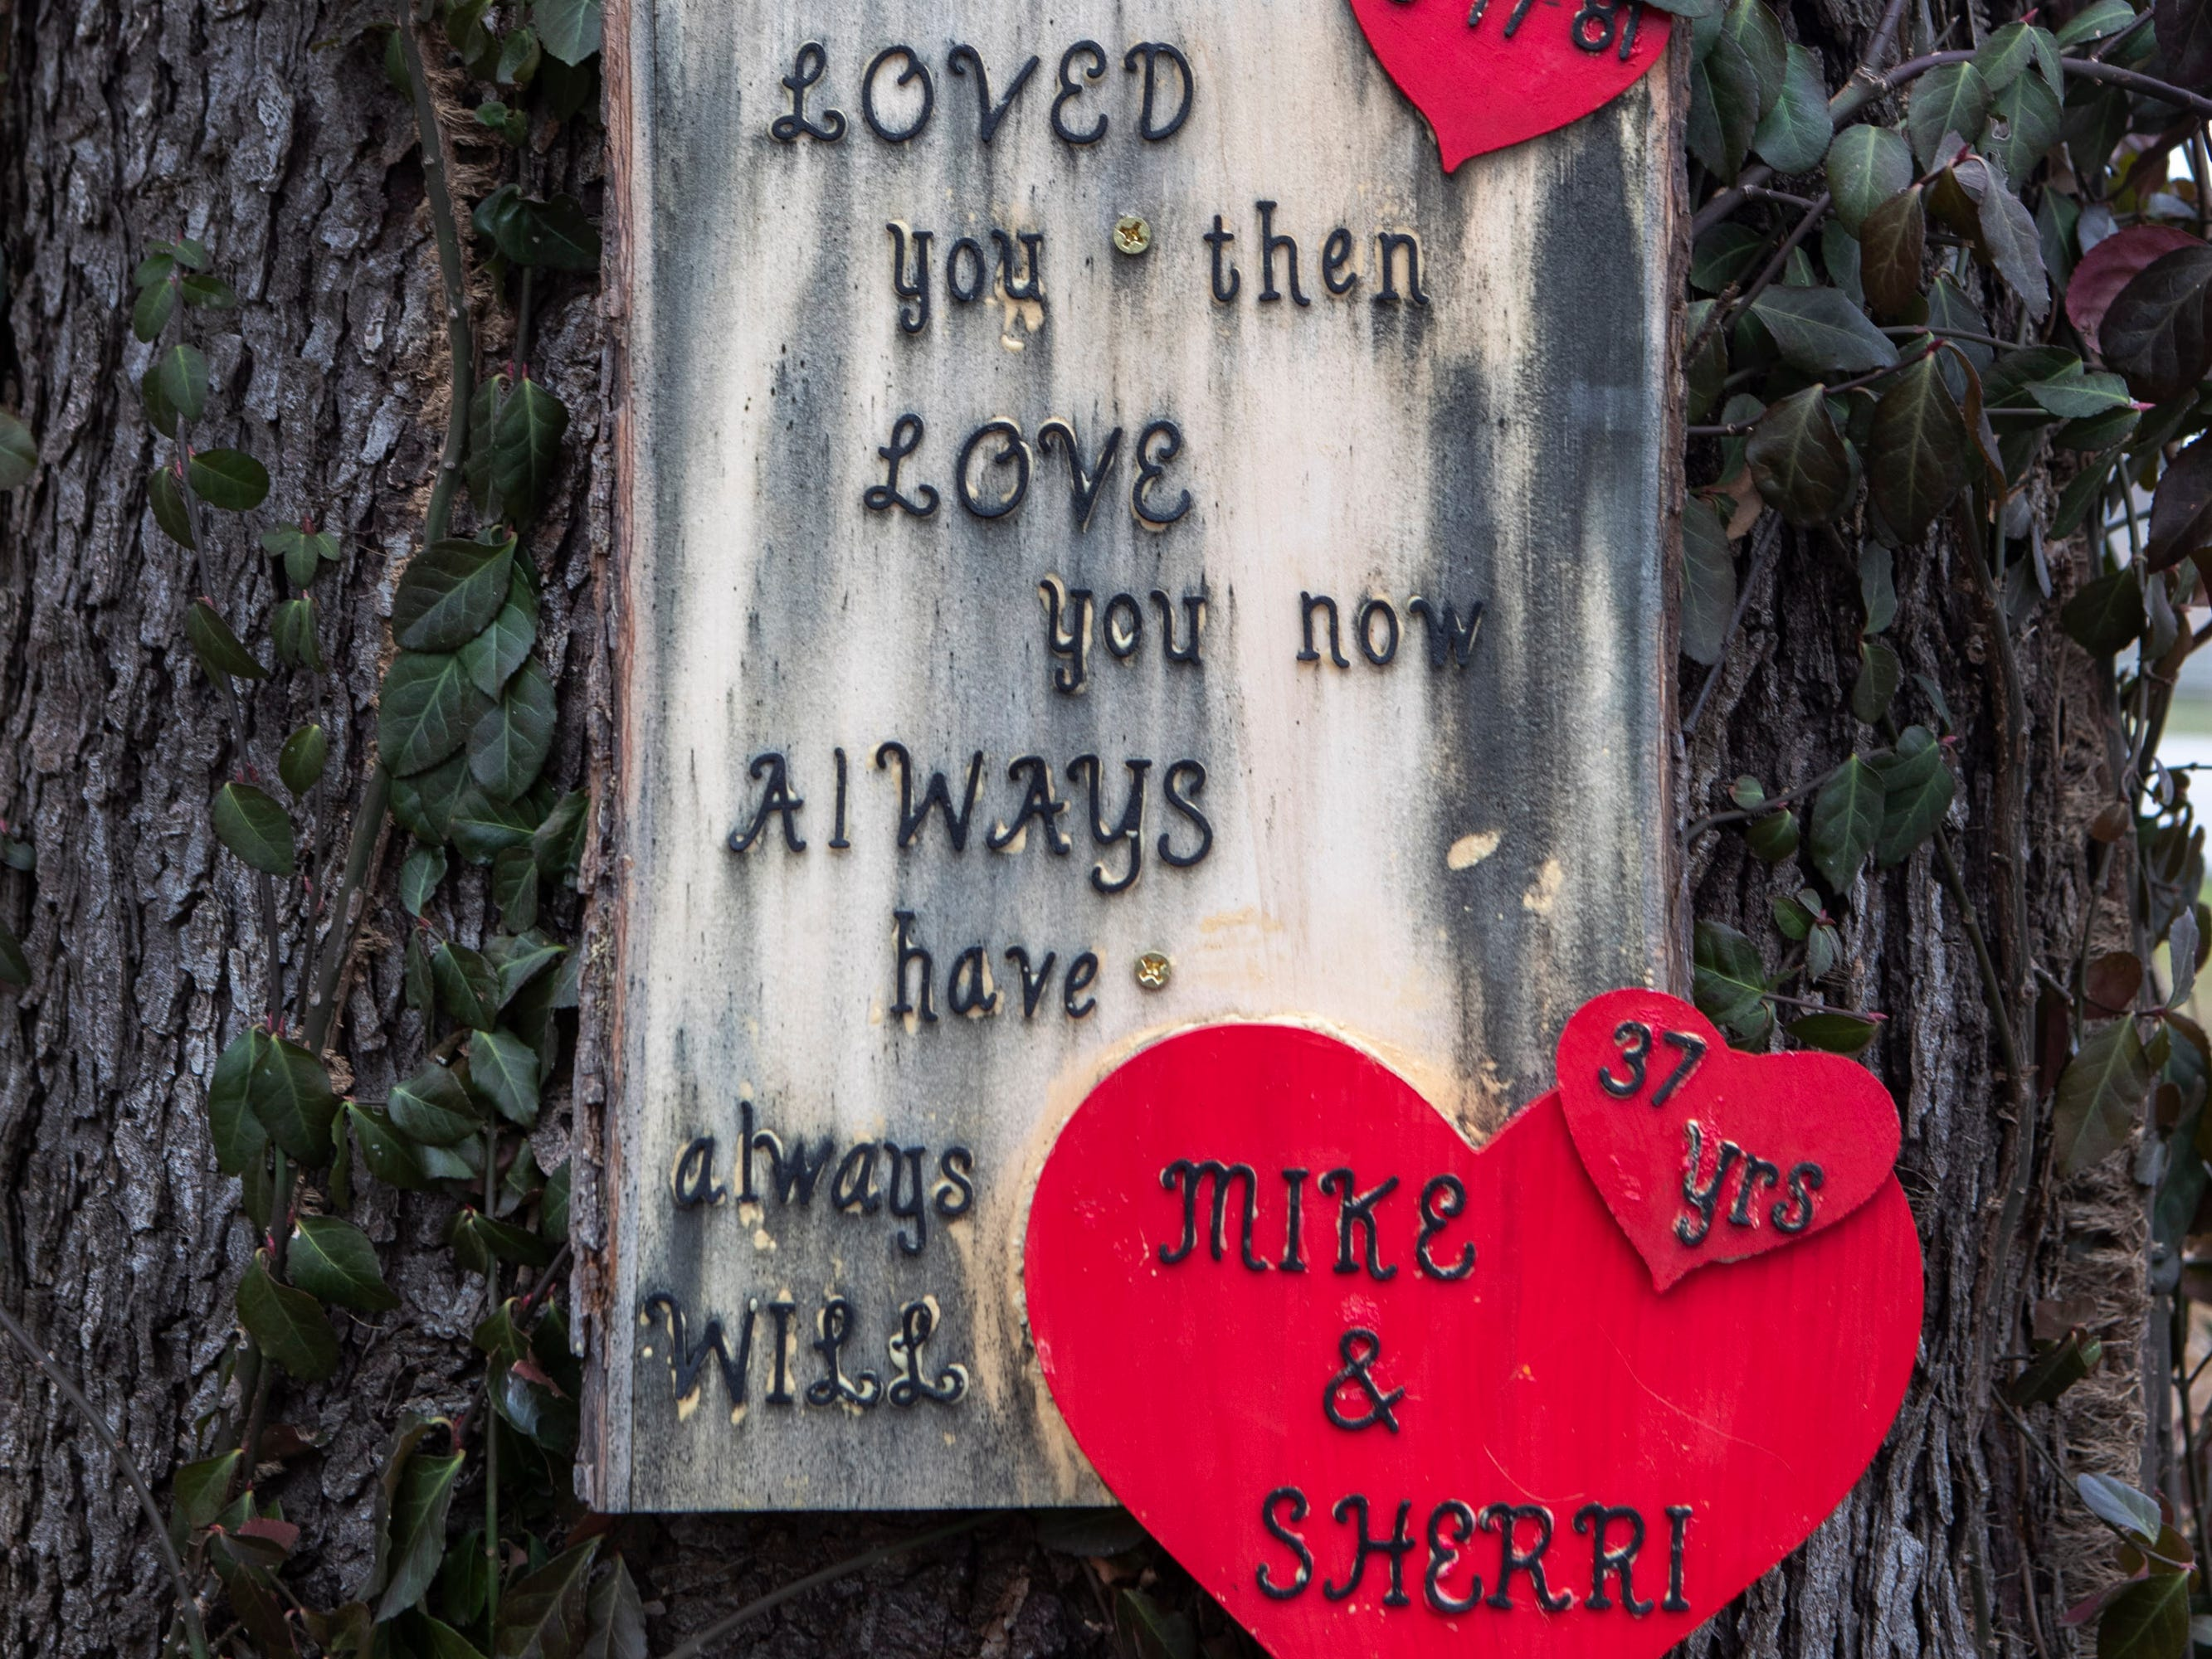 Signs of love nailed to the trees along Springdale Road in eastern Jefferson County. Jan. 4, 2019